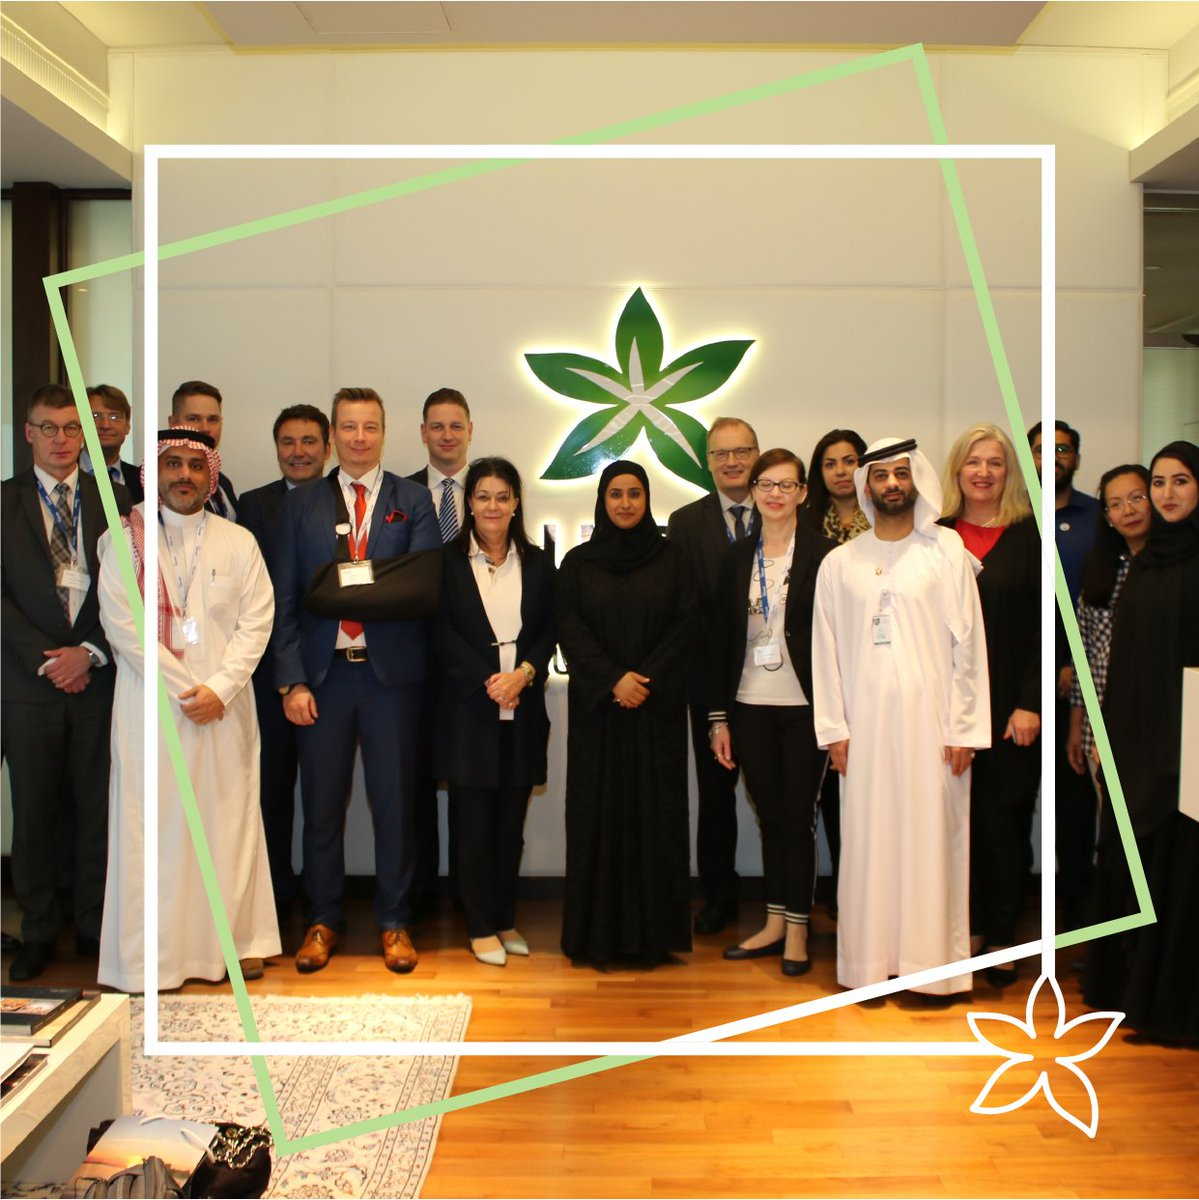 #BusinessFinland visited our offices in #November, where we met members from several #Finnish companies representing #health and #technology. #CommunityOfChoice #DHCC #Healthcare #ExcellenceInHealthcare #PatientSafety #AlliedHealthcare #Dubai #DXB #YearInReview #Delegationspic.twitter.com/15PWCO0rh0